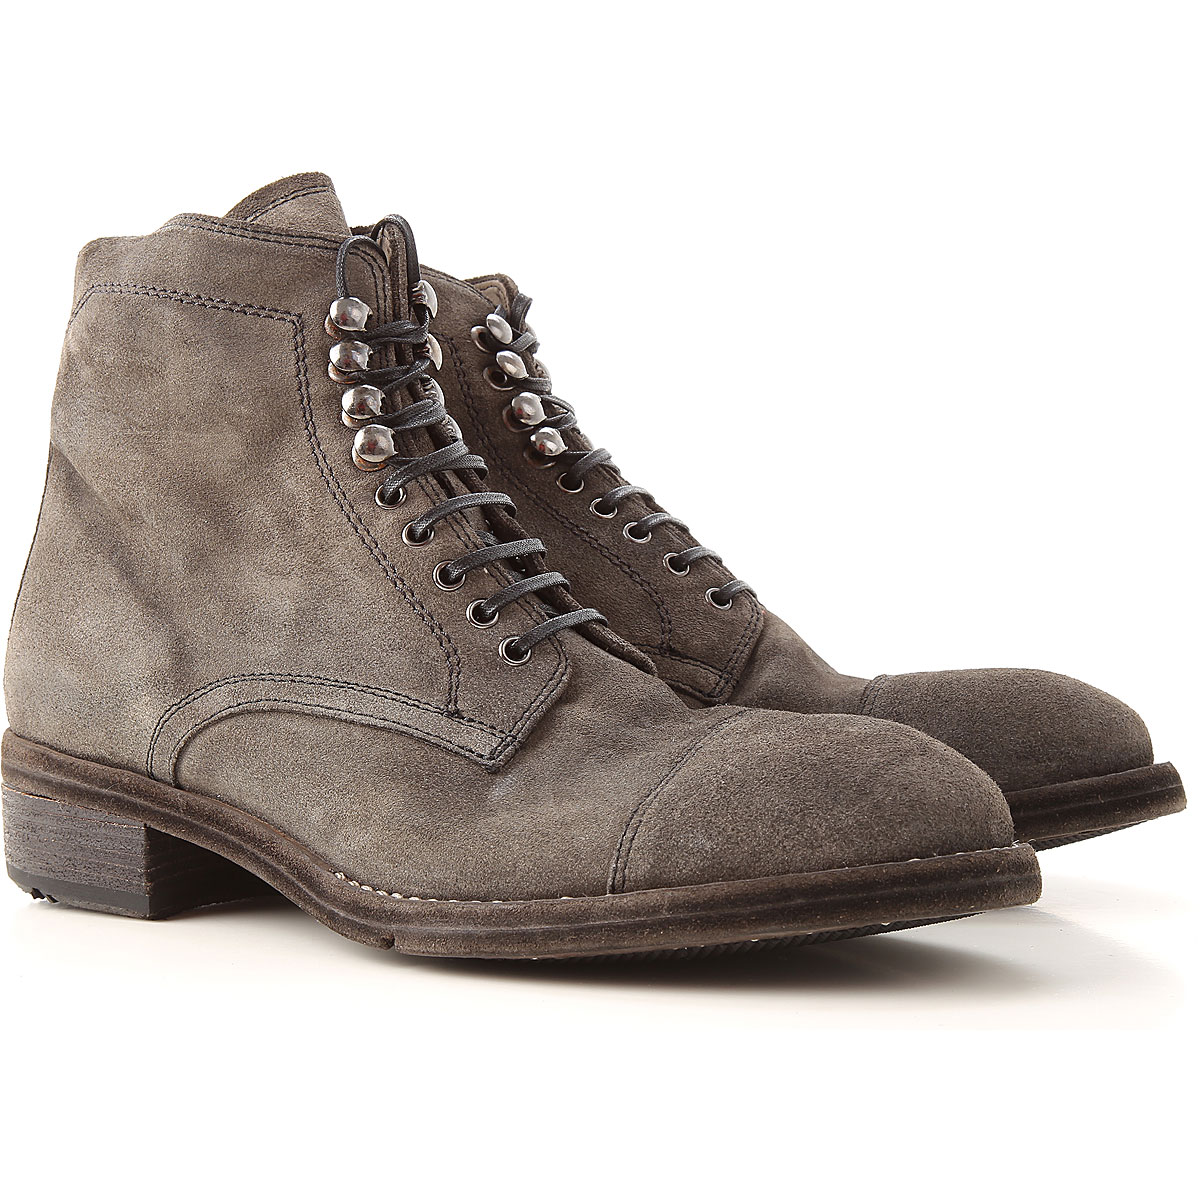 Lemargo Boots for Women, Booties On Sale, fog, Suede leather, 2019, 6.5 7 8.5